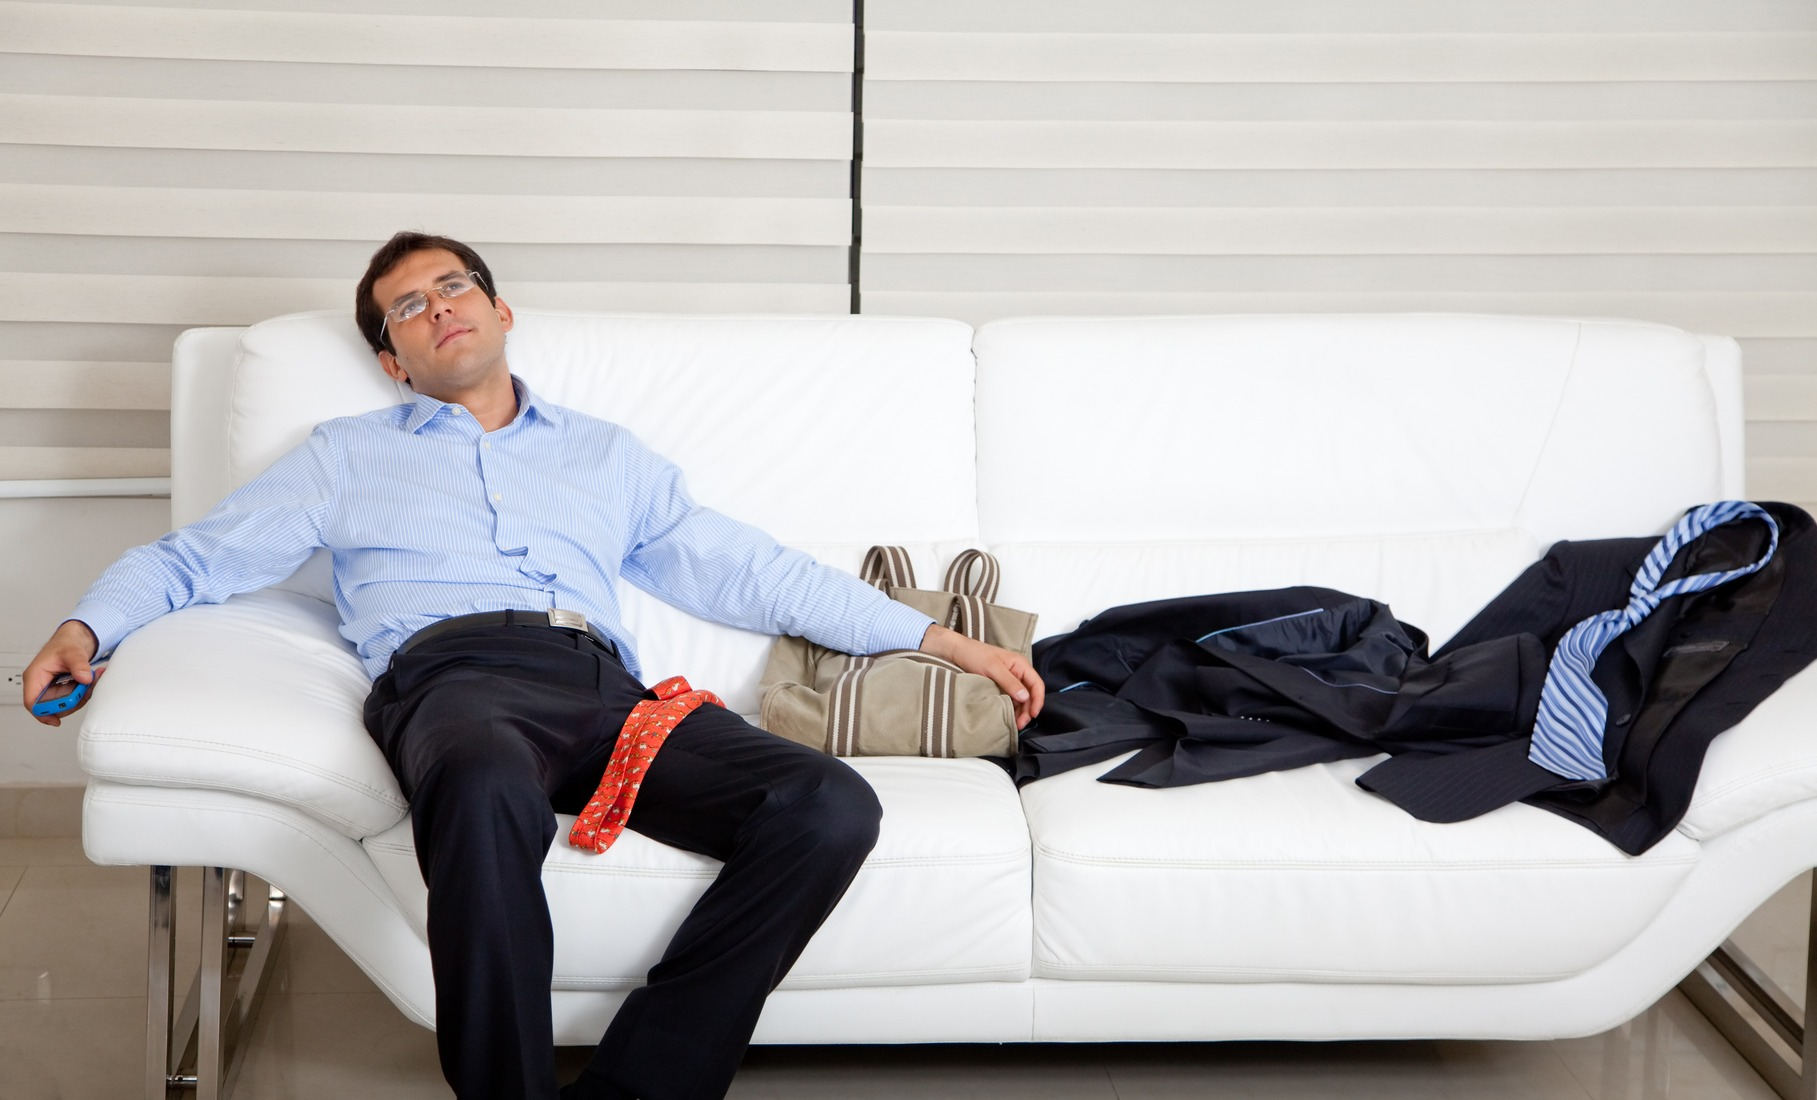 Exhausted business man lying on the sofa with a mess